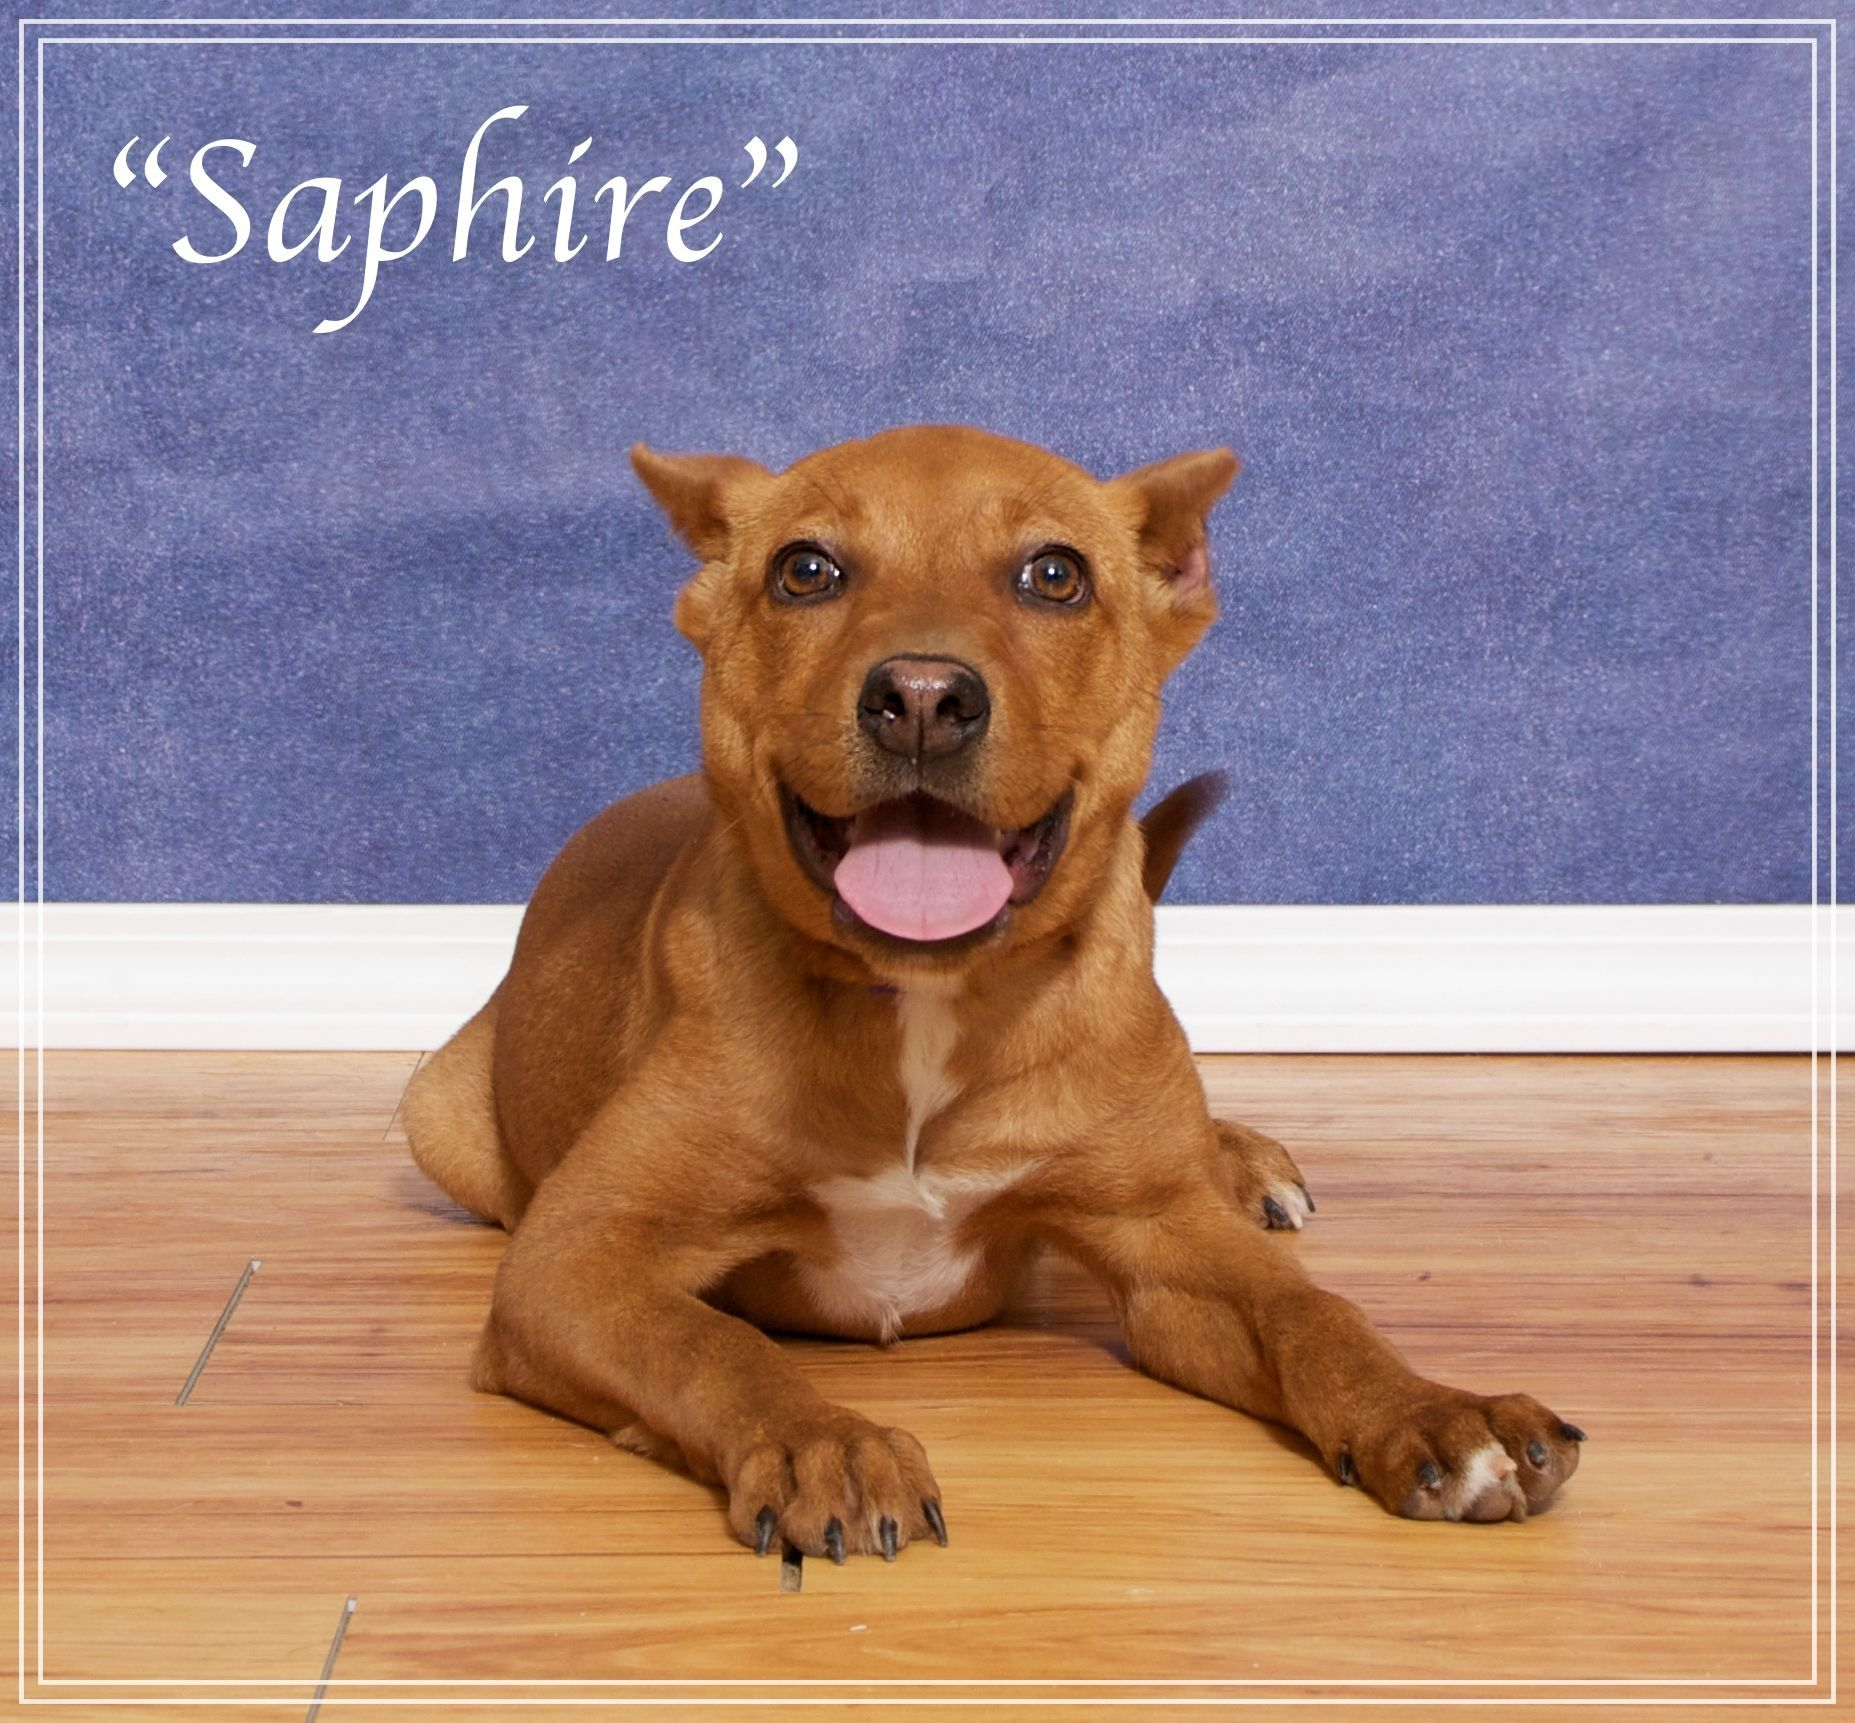 Saphire Is An Adoptable Dog Terrier Mix Searching For A Forever